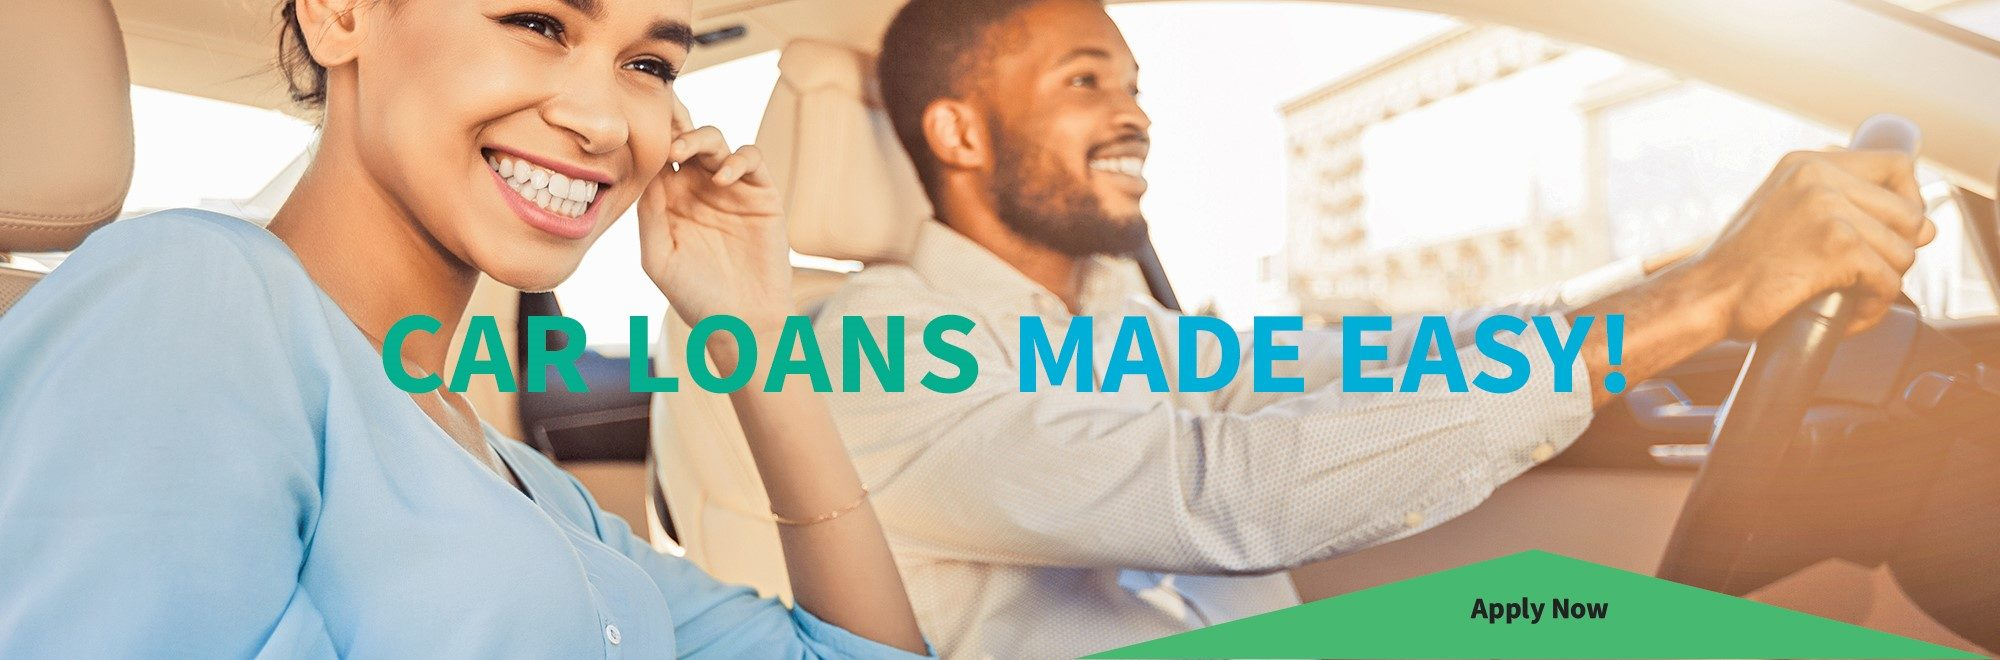 Car Loans Made Easy